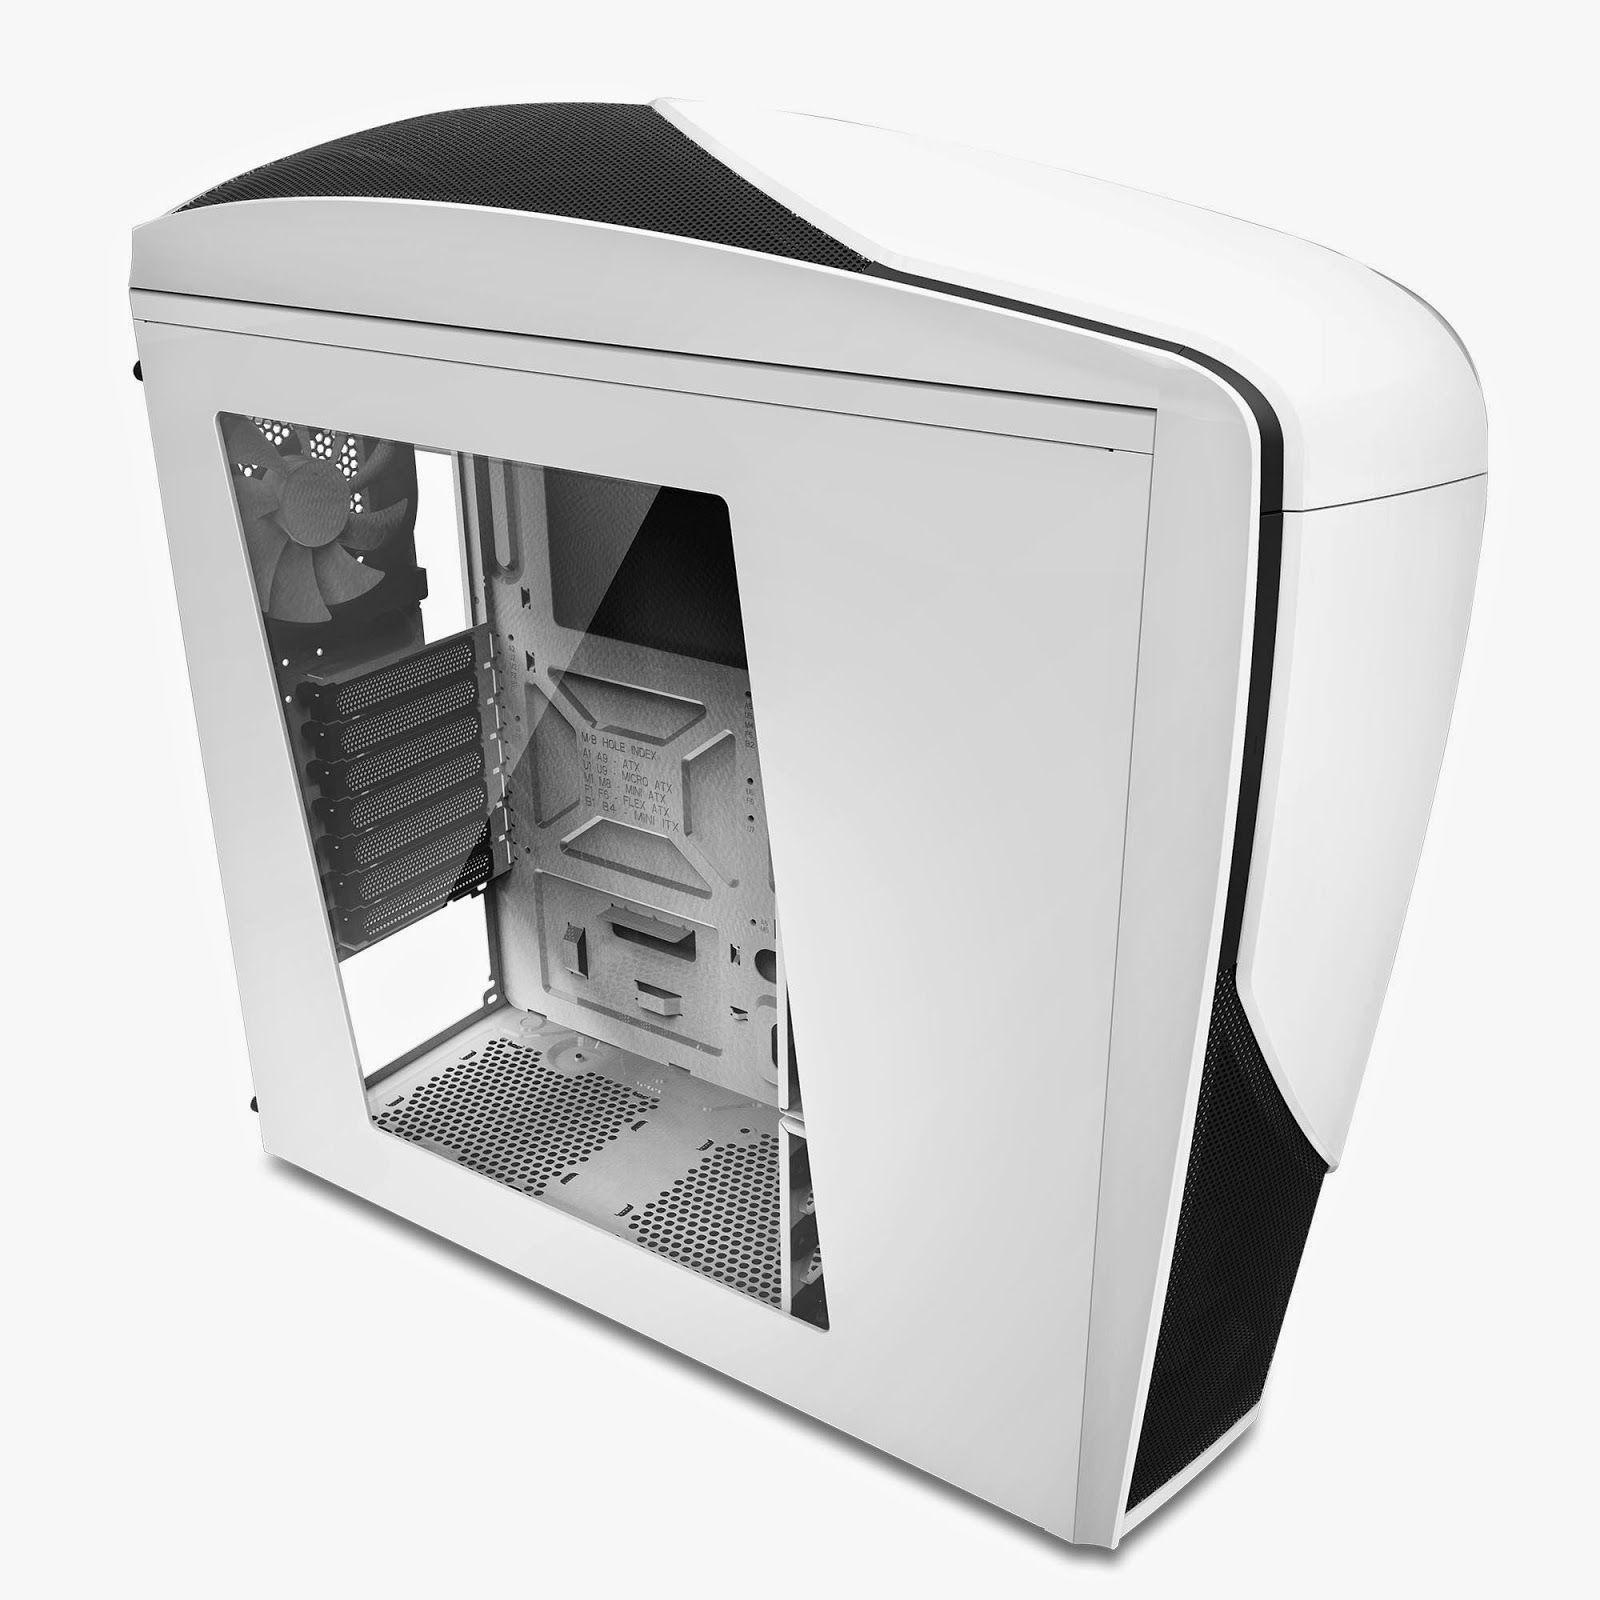 NZXT Announces Release of the Phantom 240 Mid-Tower Chassis 10